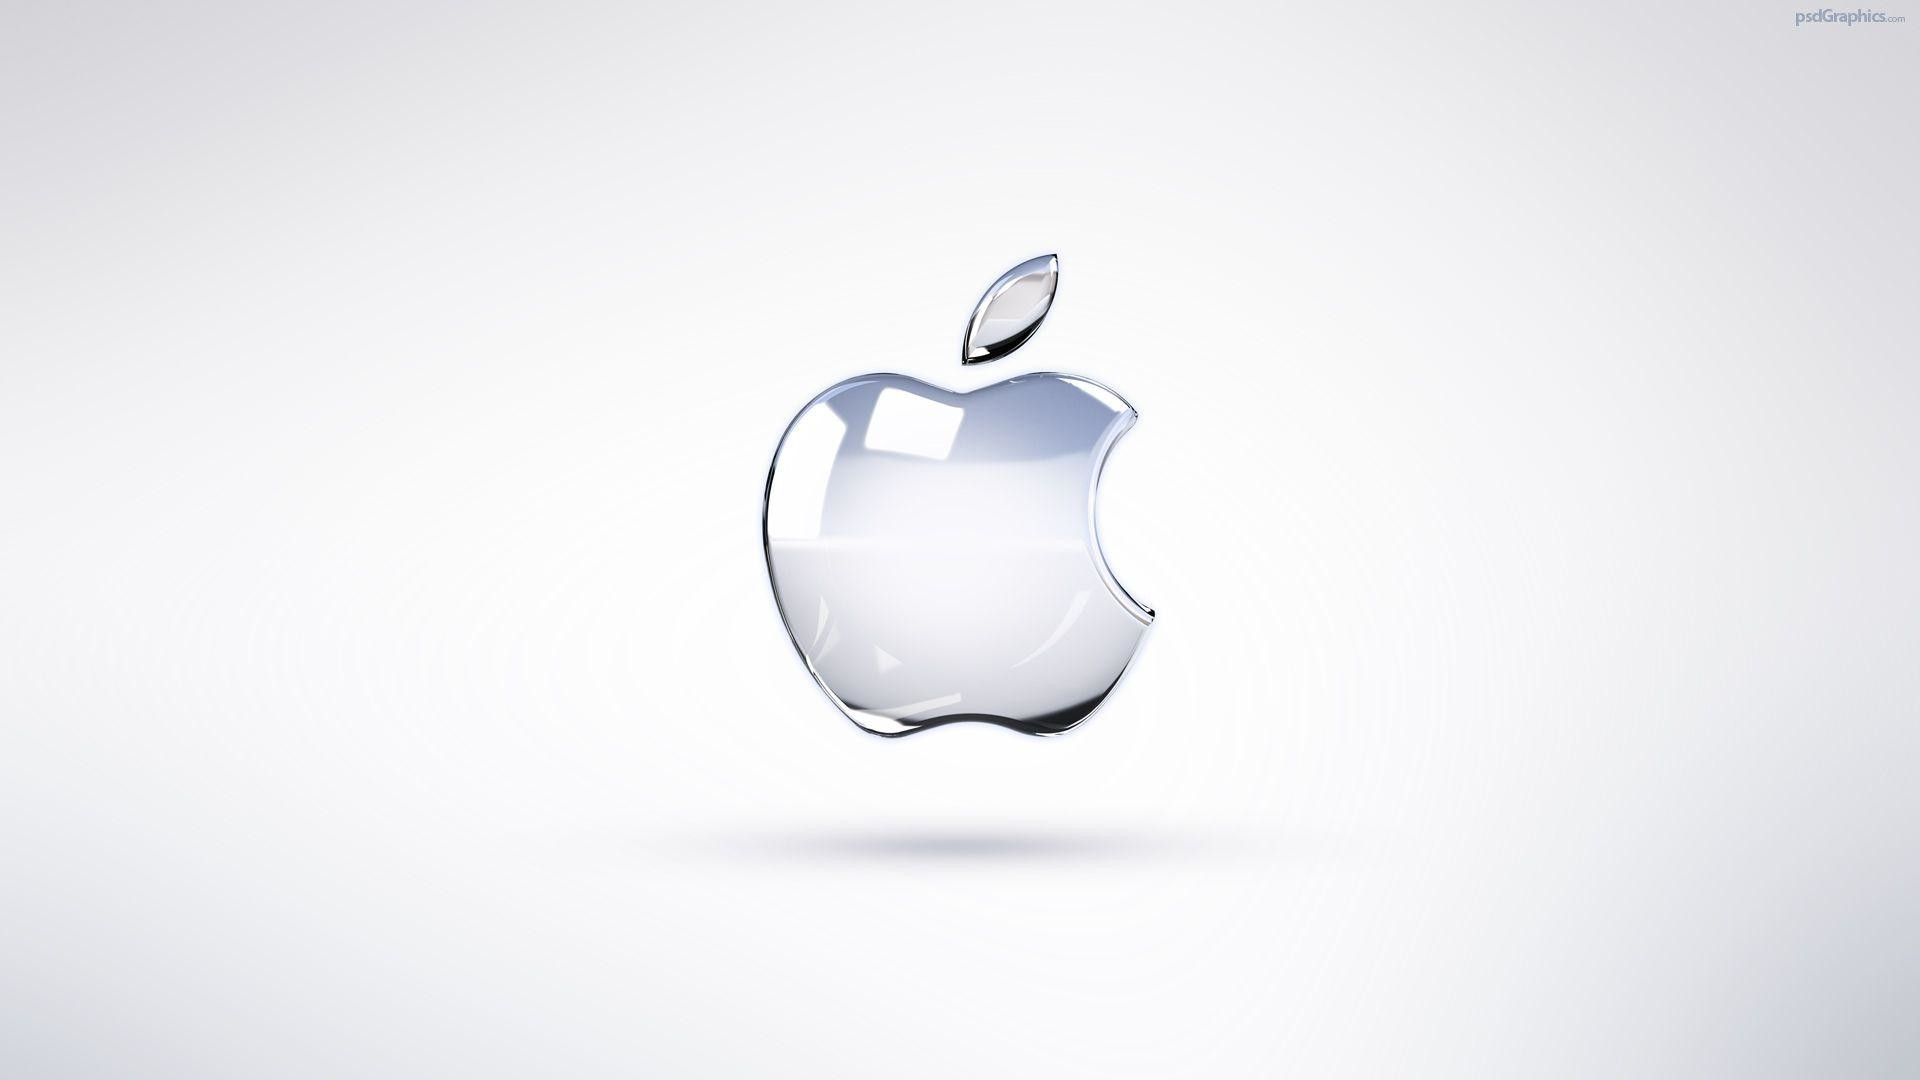 HD Apple Wallpapers 1080p 70 images 1920x1080